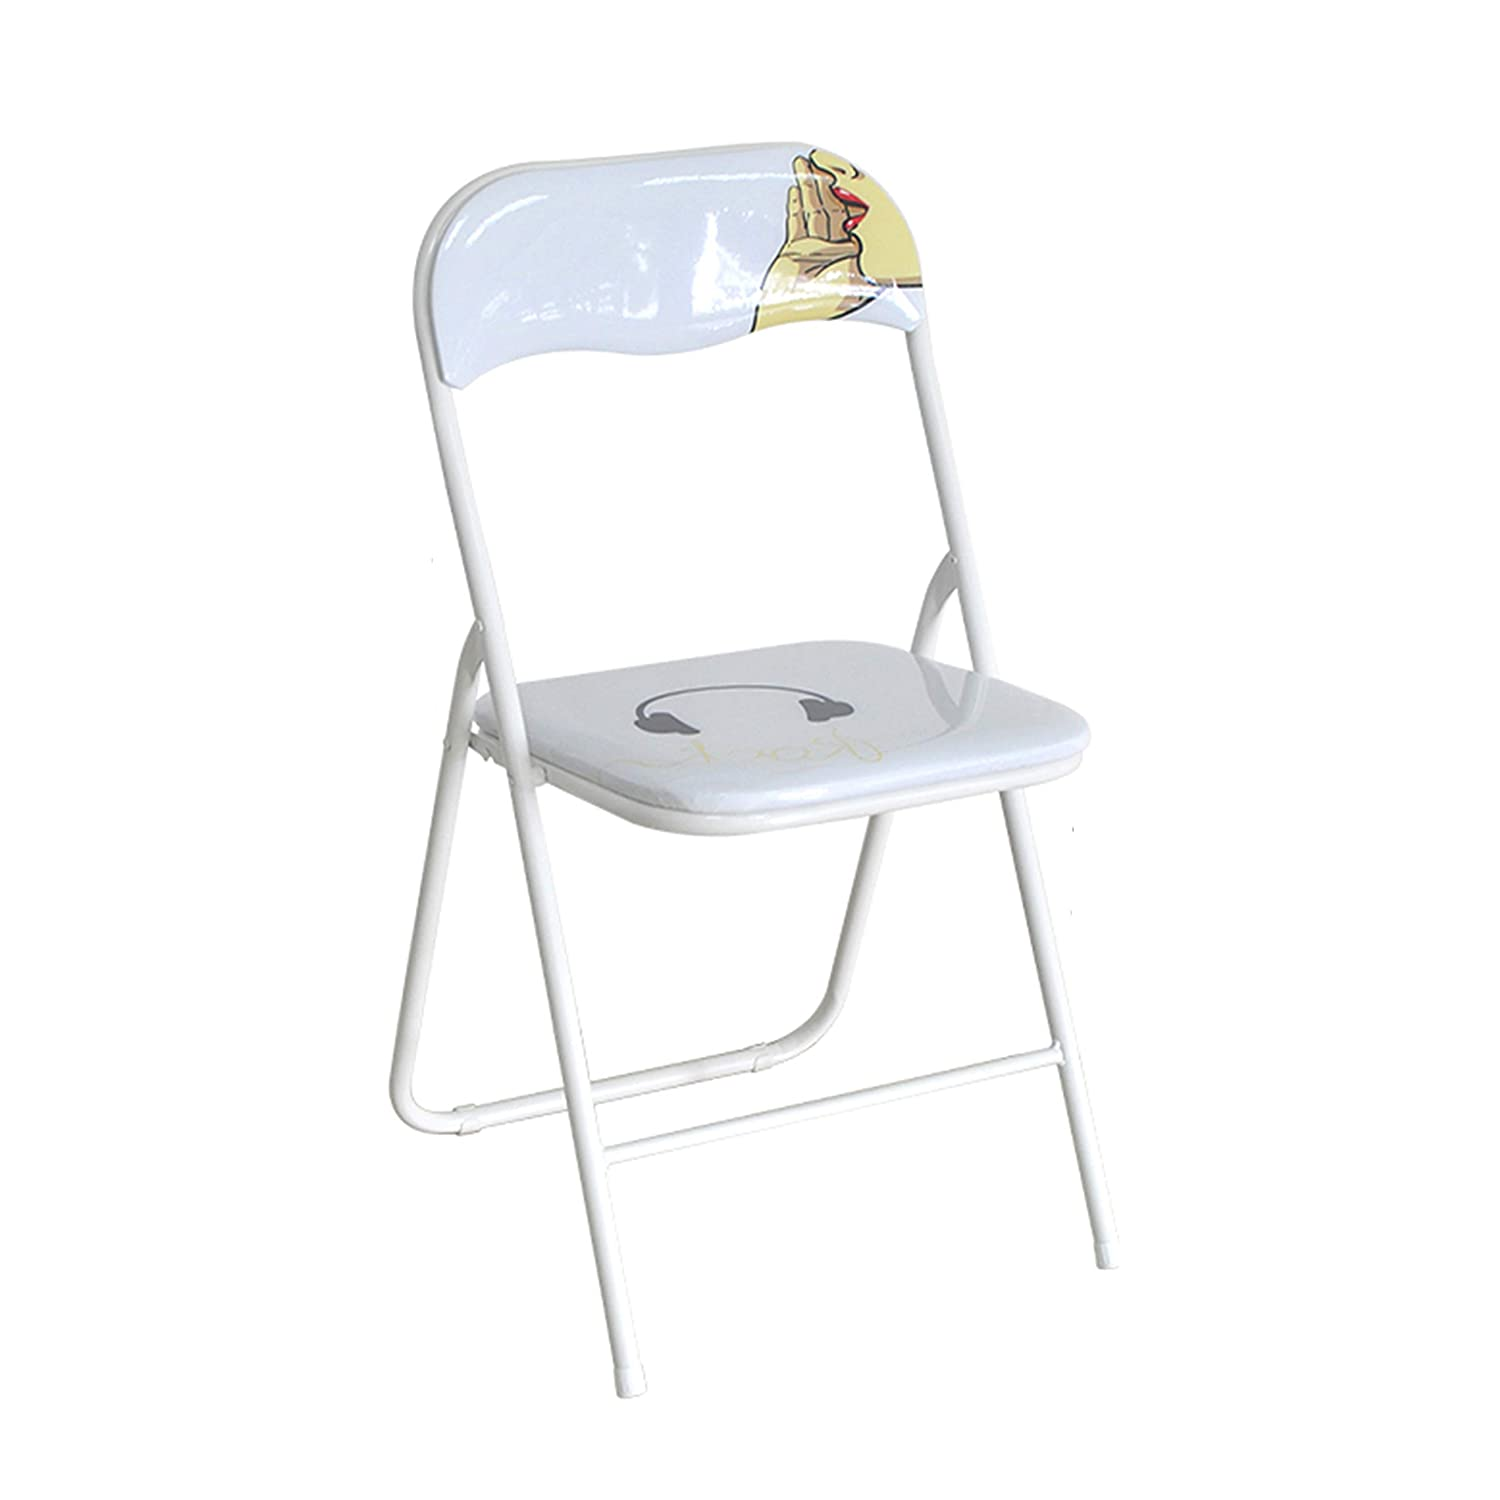 C Fold Chair, Portable Backrest Chair Plastic Household Dining Chair Office Chair Conference Chair Training Chair Student Chair Metal Chair,a